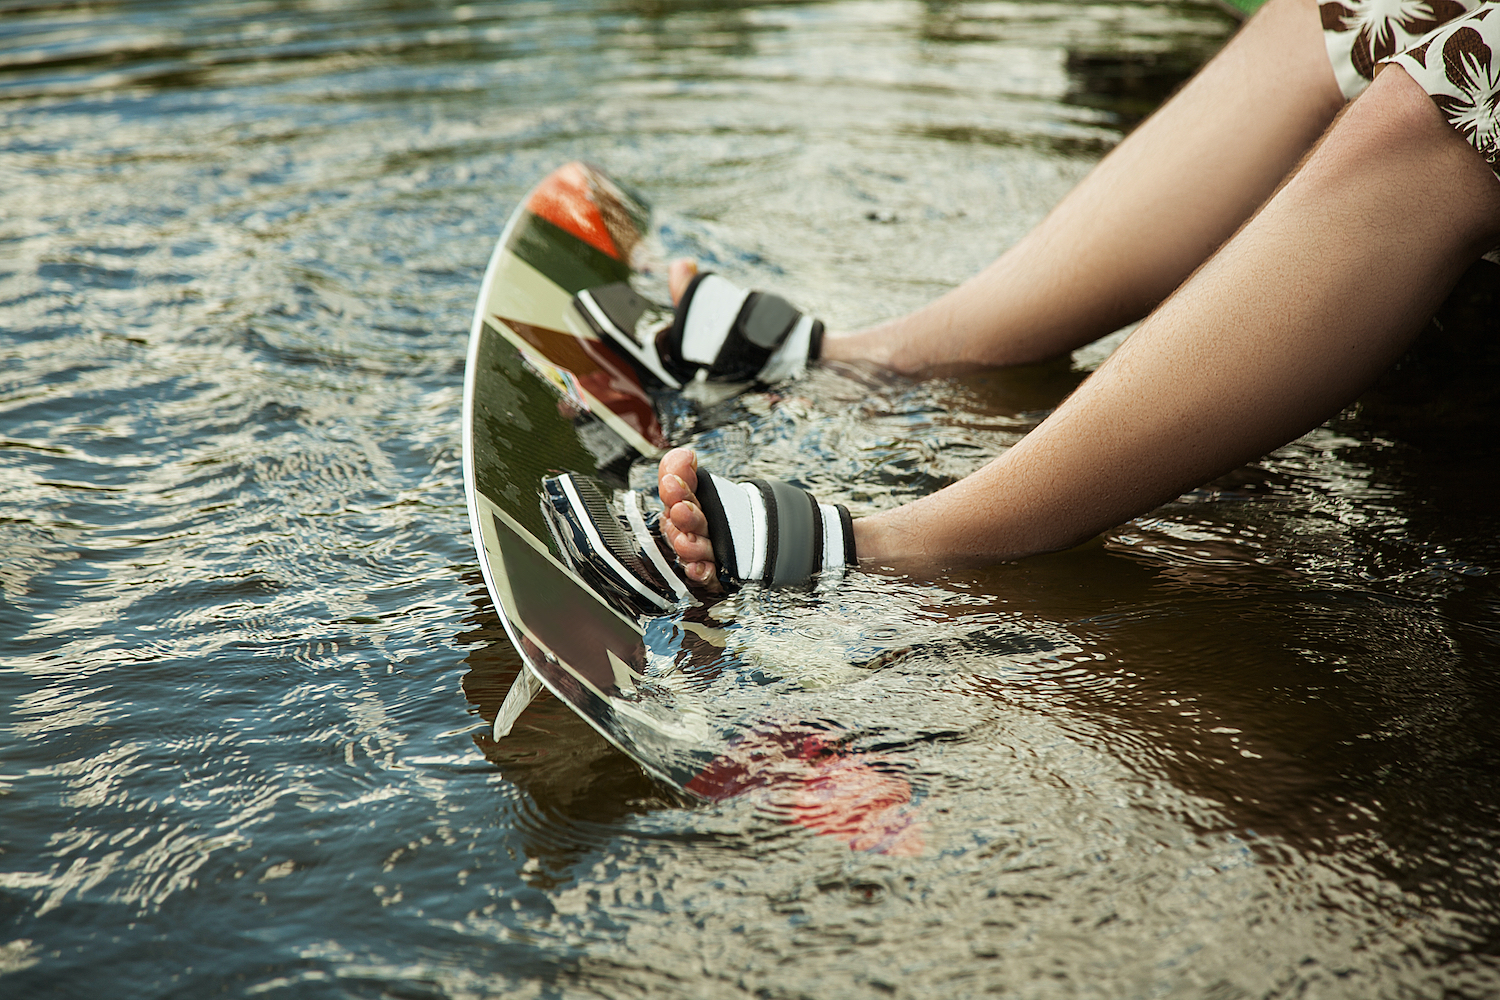 feet in wakeboard off of boat